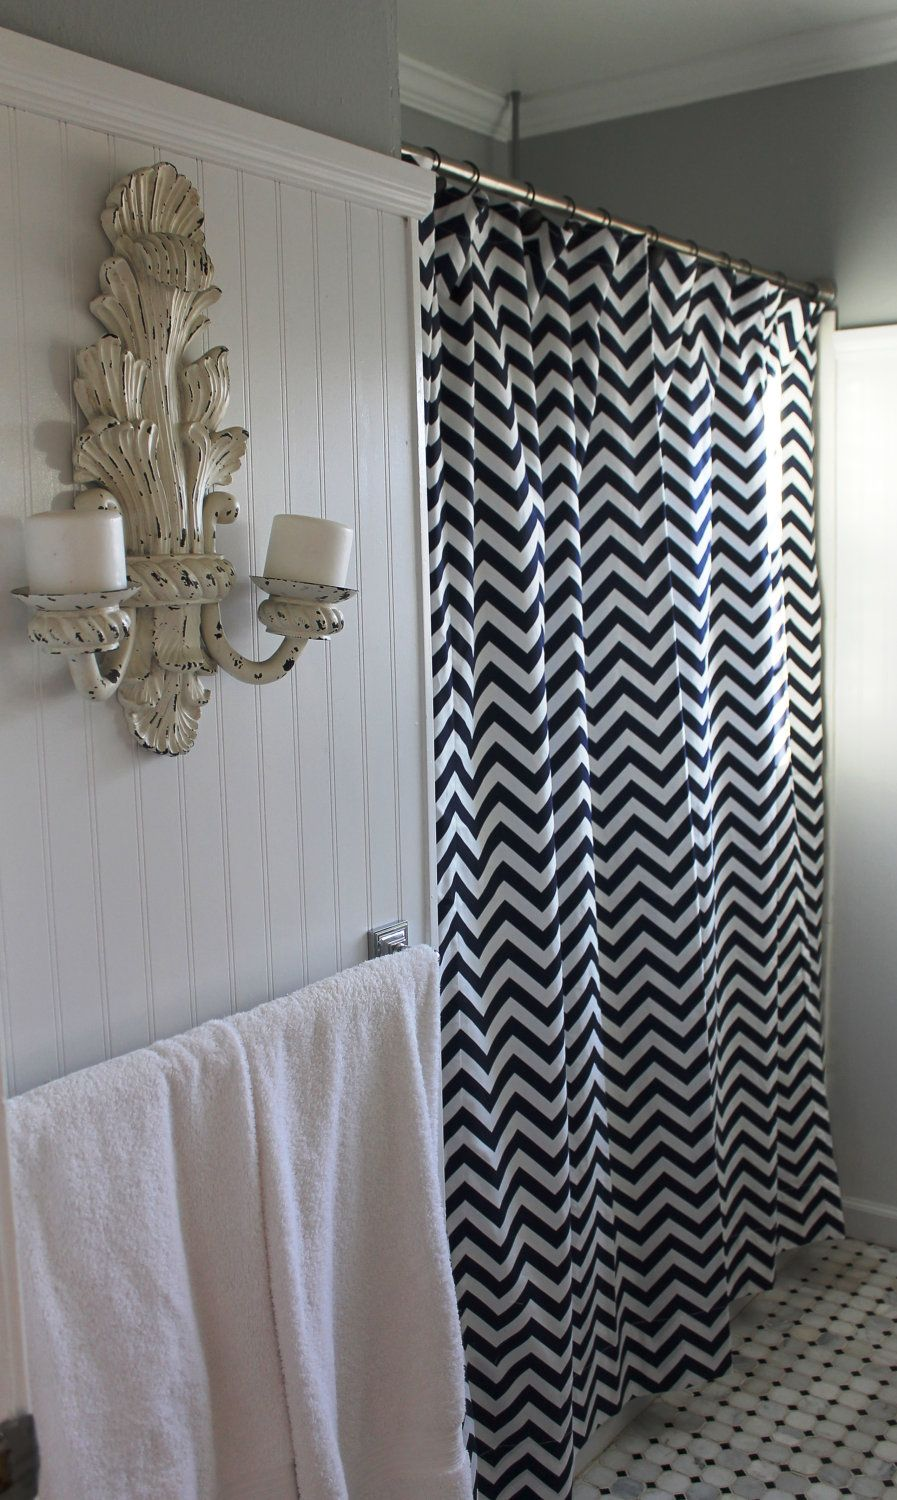 Good Chevron Zig Zag Shower Curtain Paired With Shabby Chic Wall Sconces.